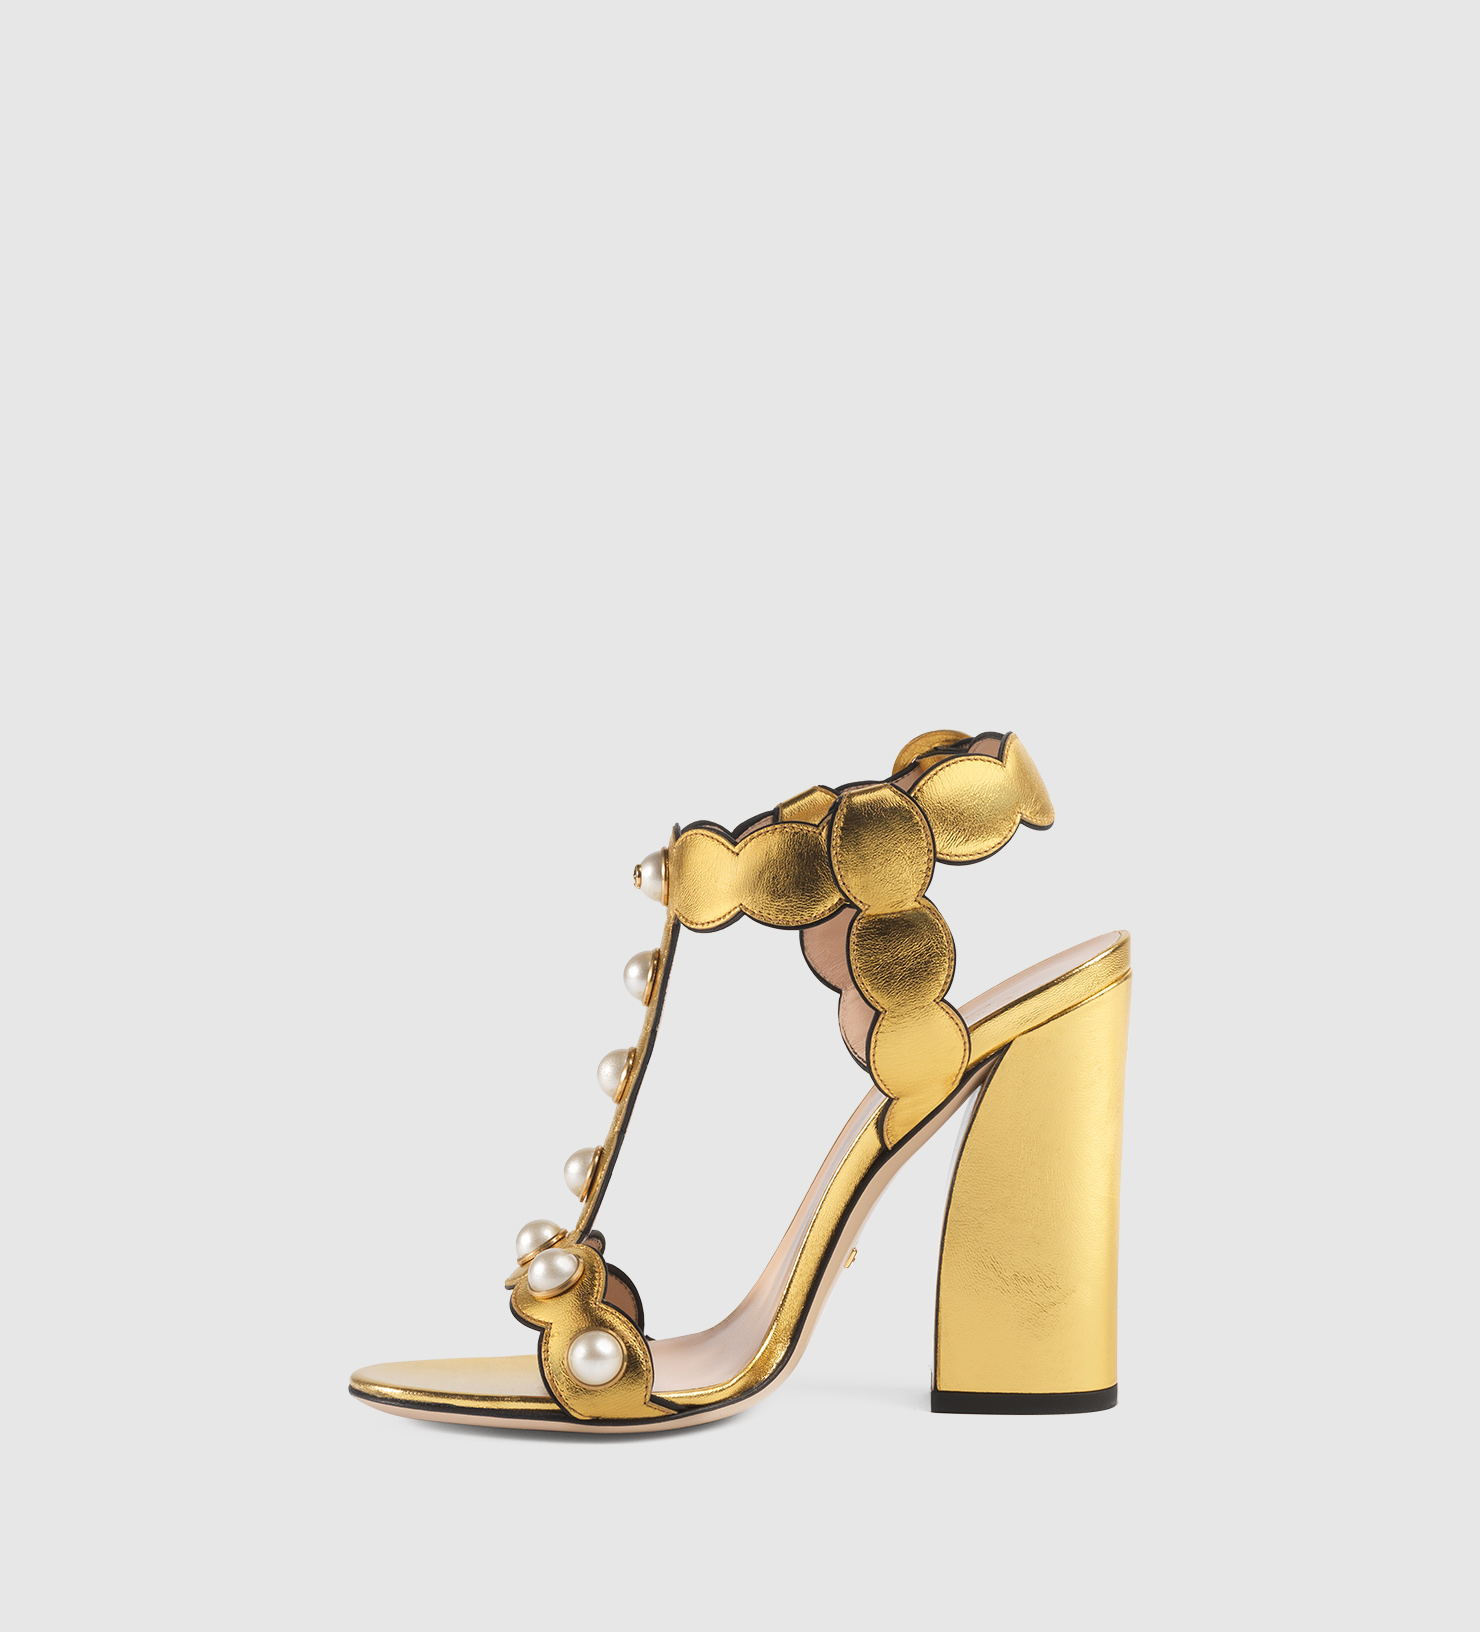 682cc65fa Gucci Willow Leather T-strap Sandal in Metallic - Lyst